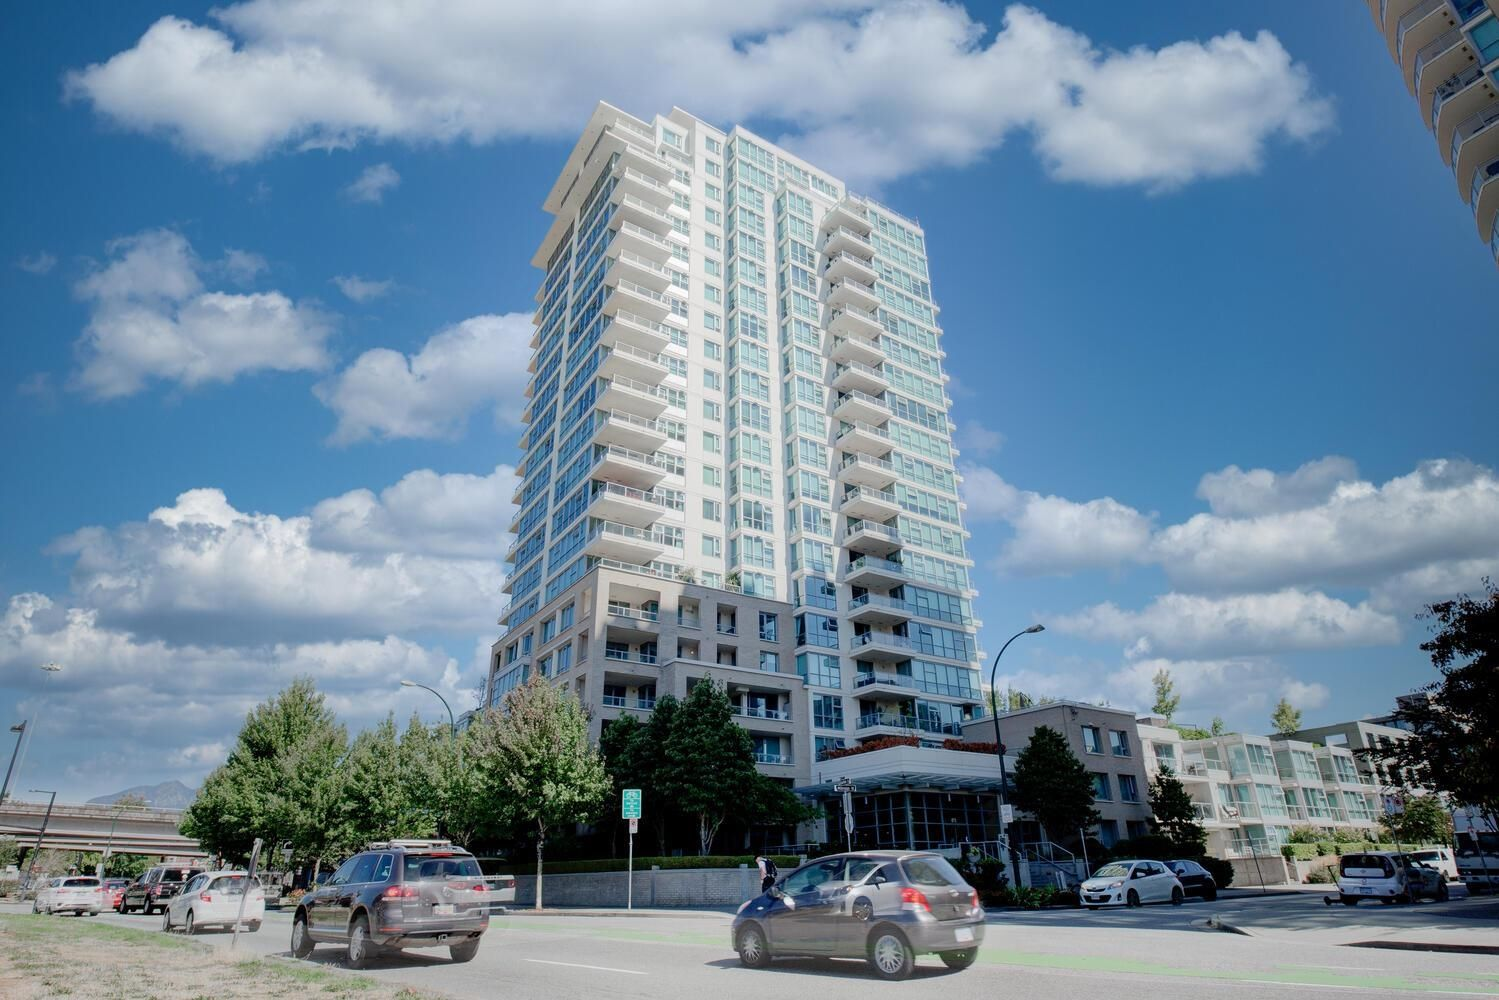 Main Photo: 1503 125 MILROSS AVENUE in Vancouver: Downtown VE Condo for sale (Vancouver East)  : MLS®# R2616150